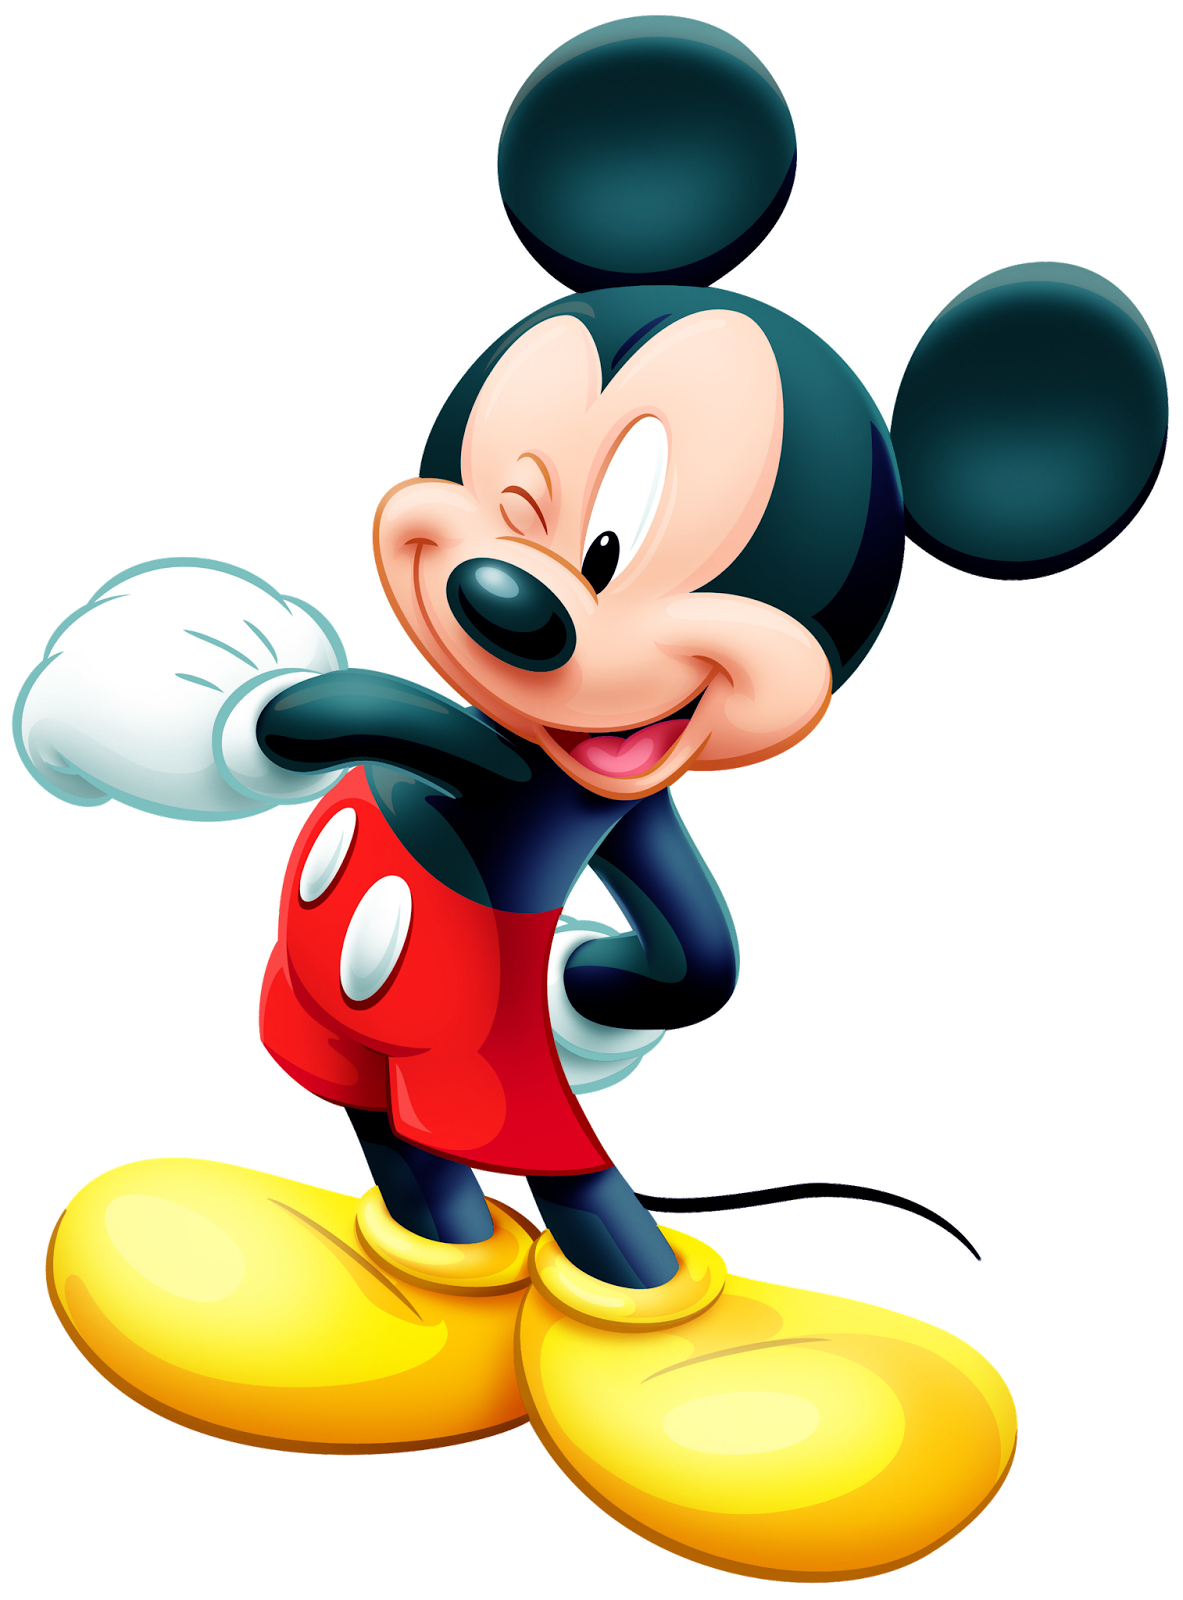 Mickey 2 Psd16624 Png 1183 1600 Mickey Mouse Png Wallpaper Do